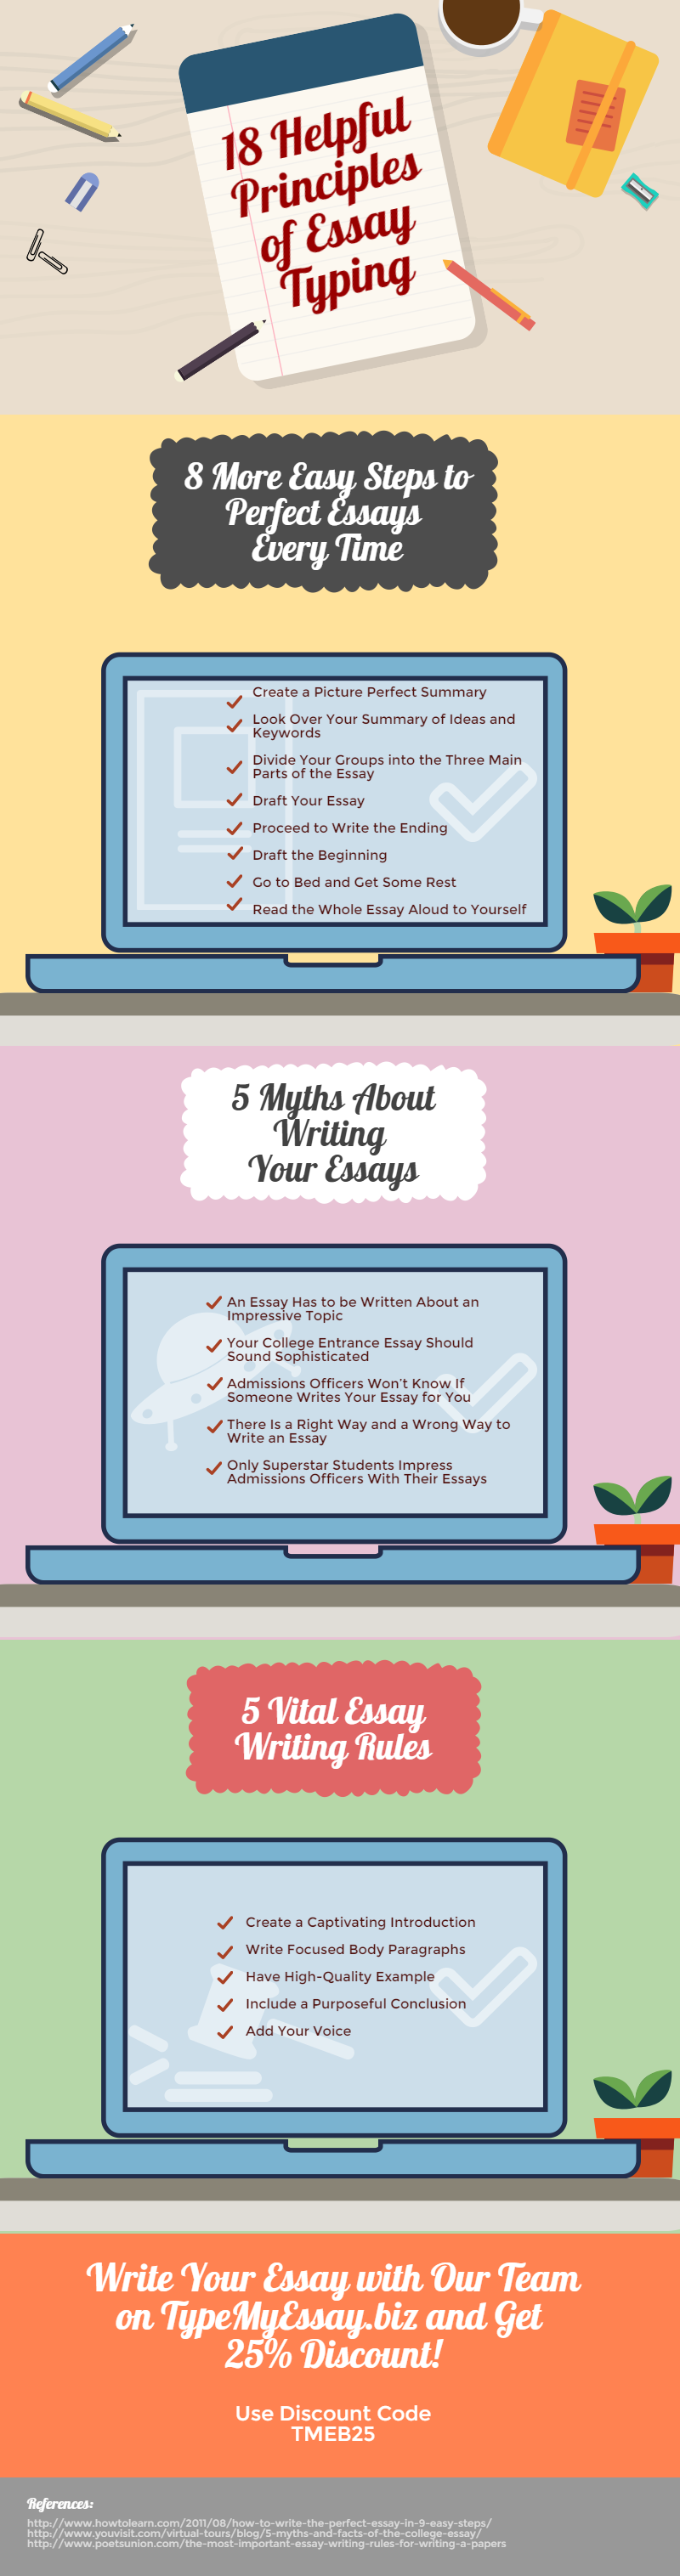 Sample Narrative Essay High School  Helpful Principles Of Essay Writing Infographic   Httpelearninginfographicscom Argumentative Essay Sample High School also Buy An Essay Paper  Helpful Principles Of Essay Writing Infographic  Education  How To Write A College Essay Paper